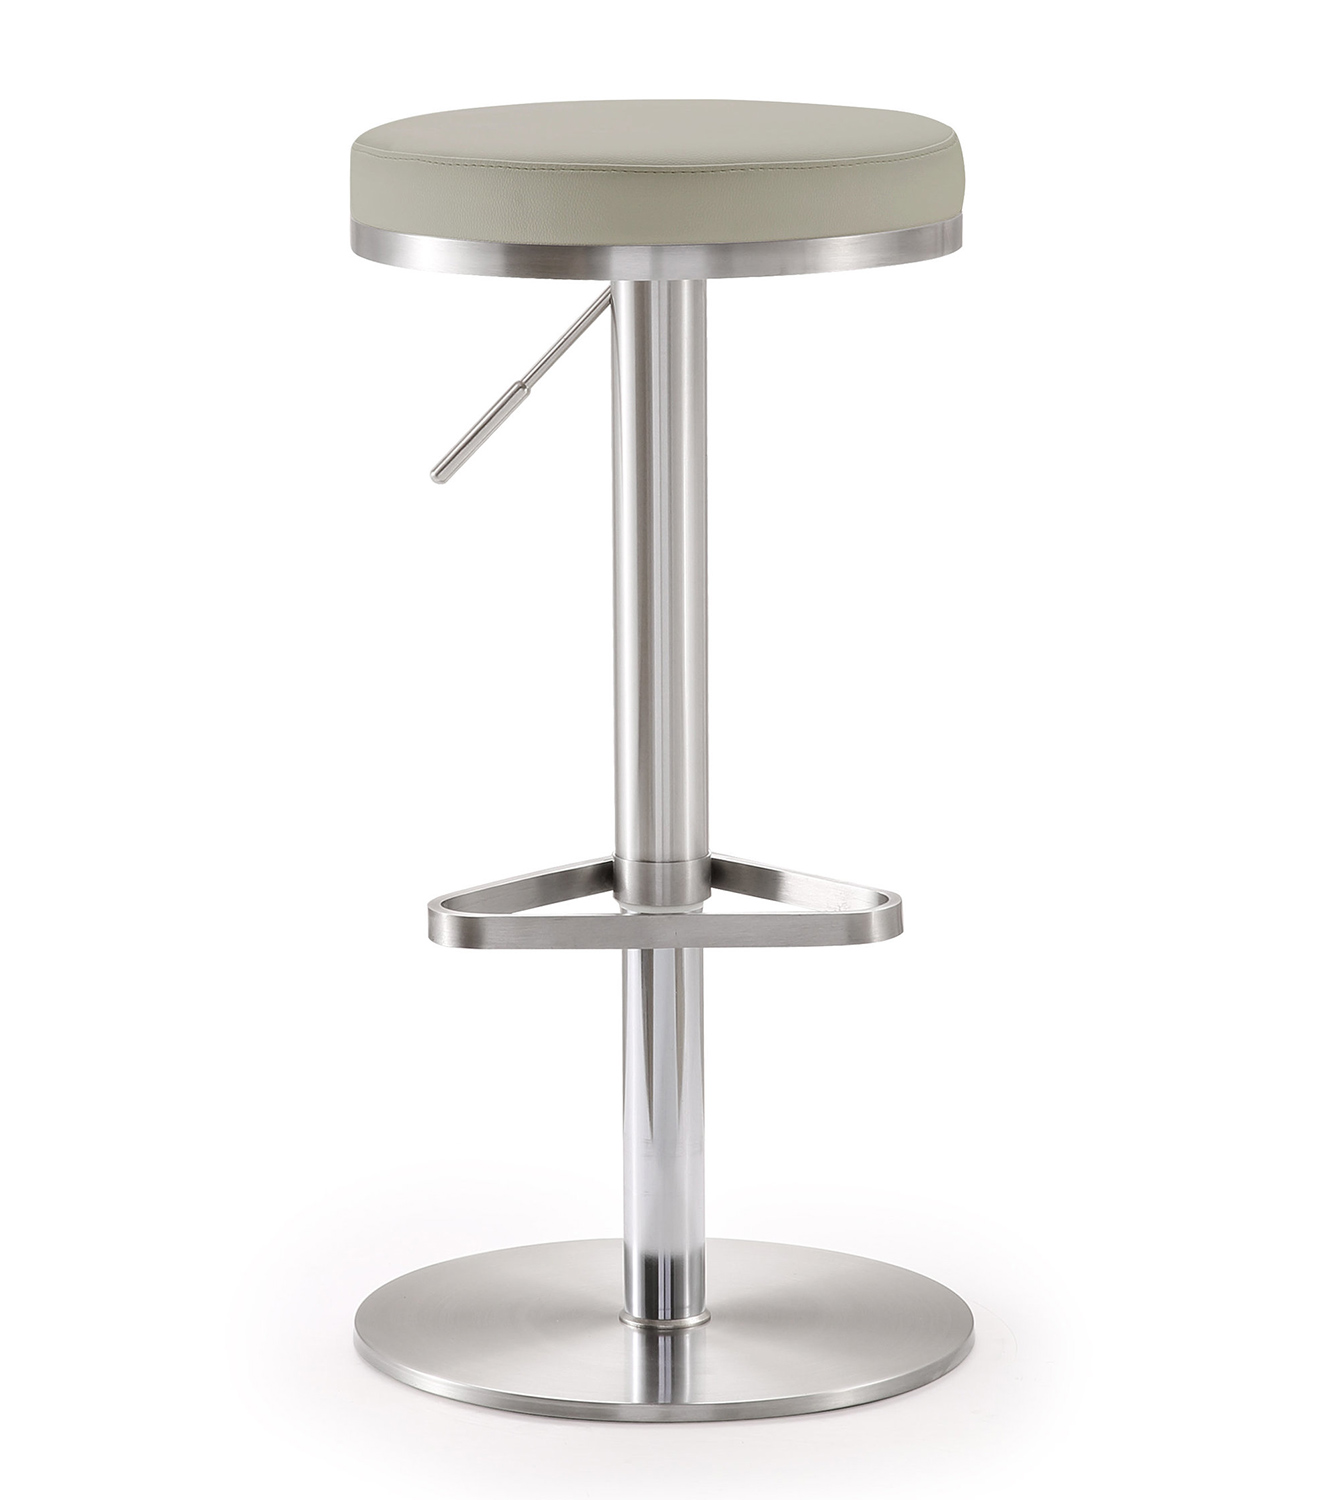 TOV Furniture Fano Steel Adjustable Barstool - Light Grey